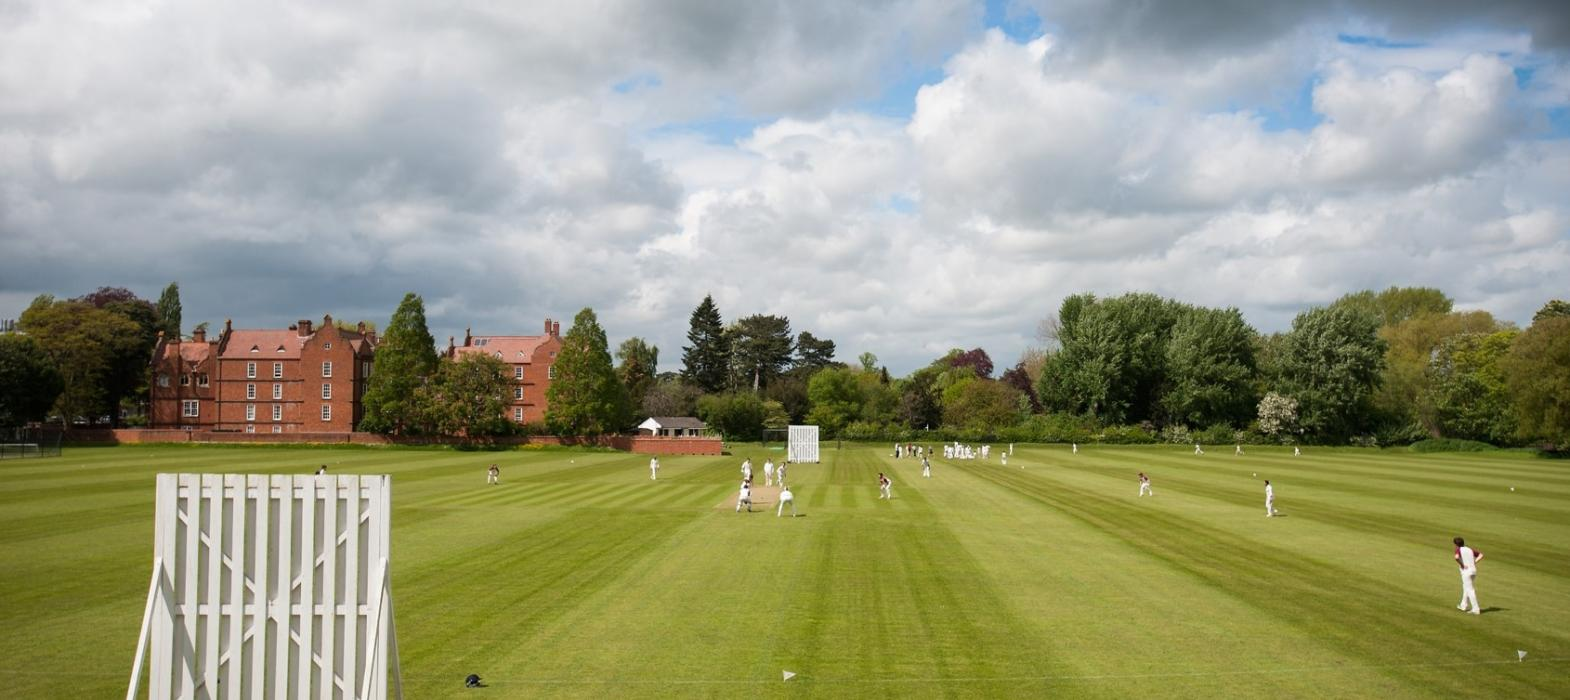 Cricket at New College's Weston Sports Ground